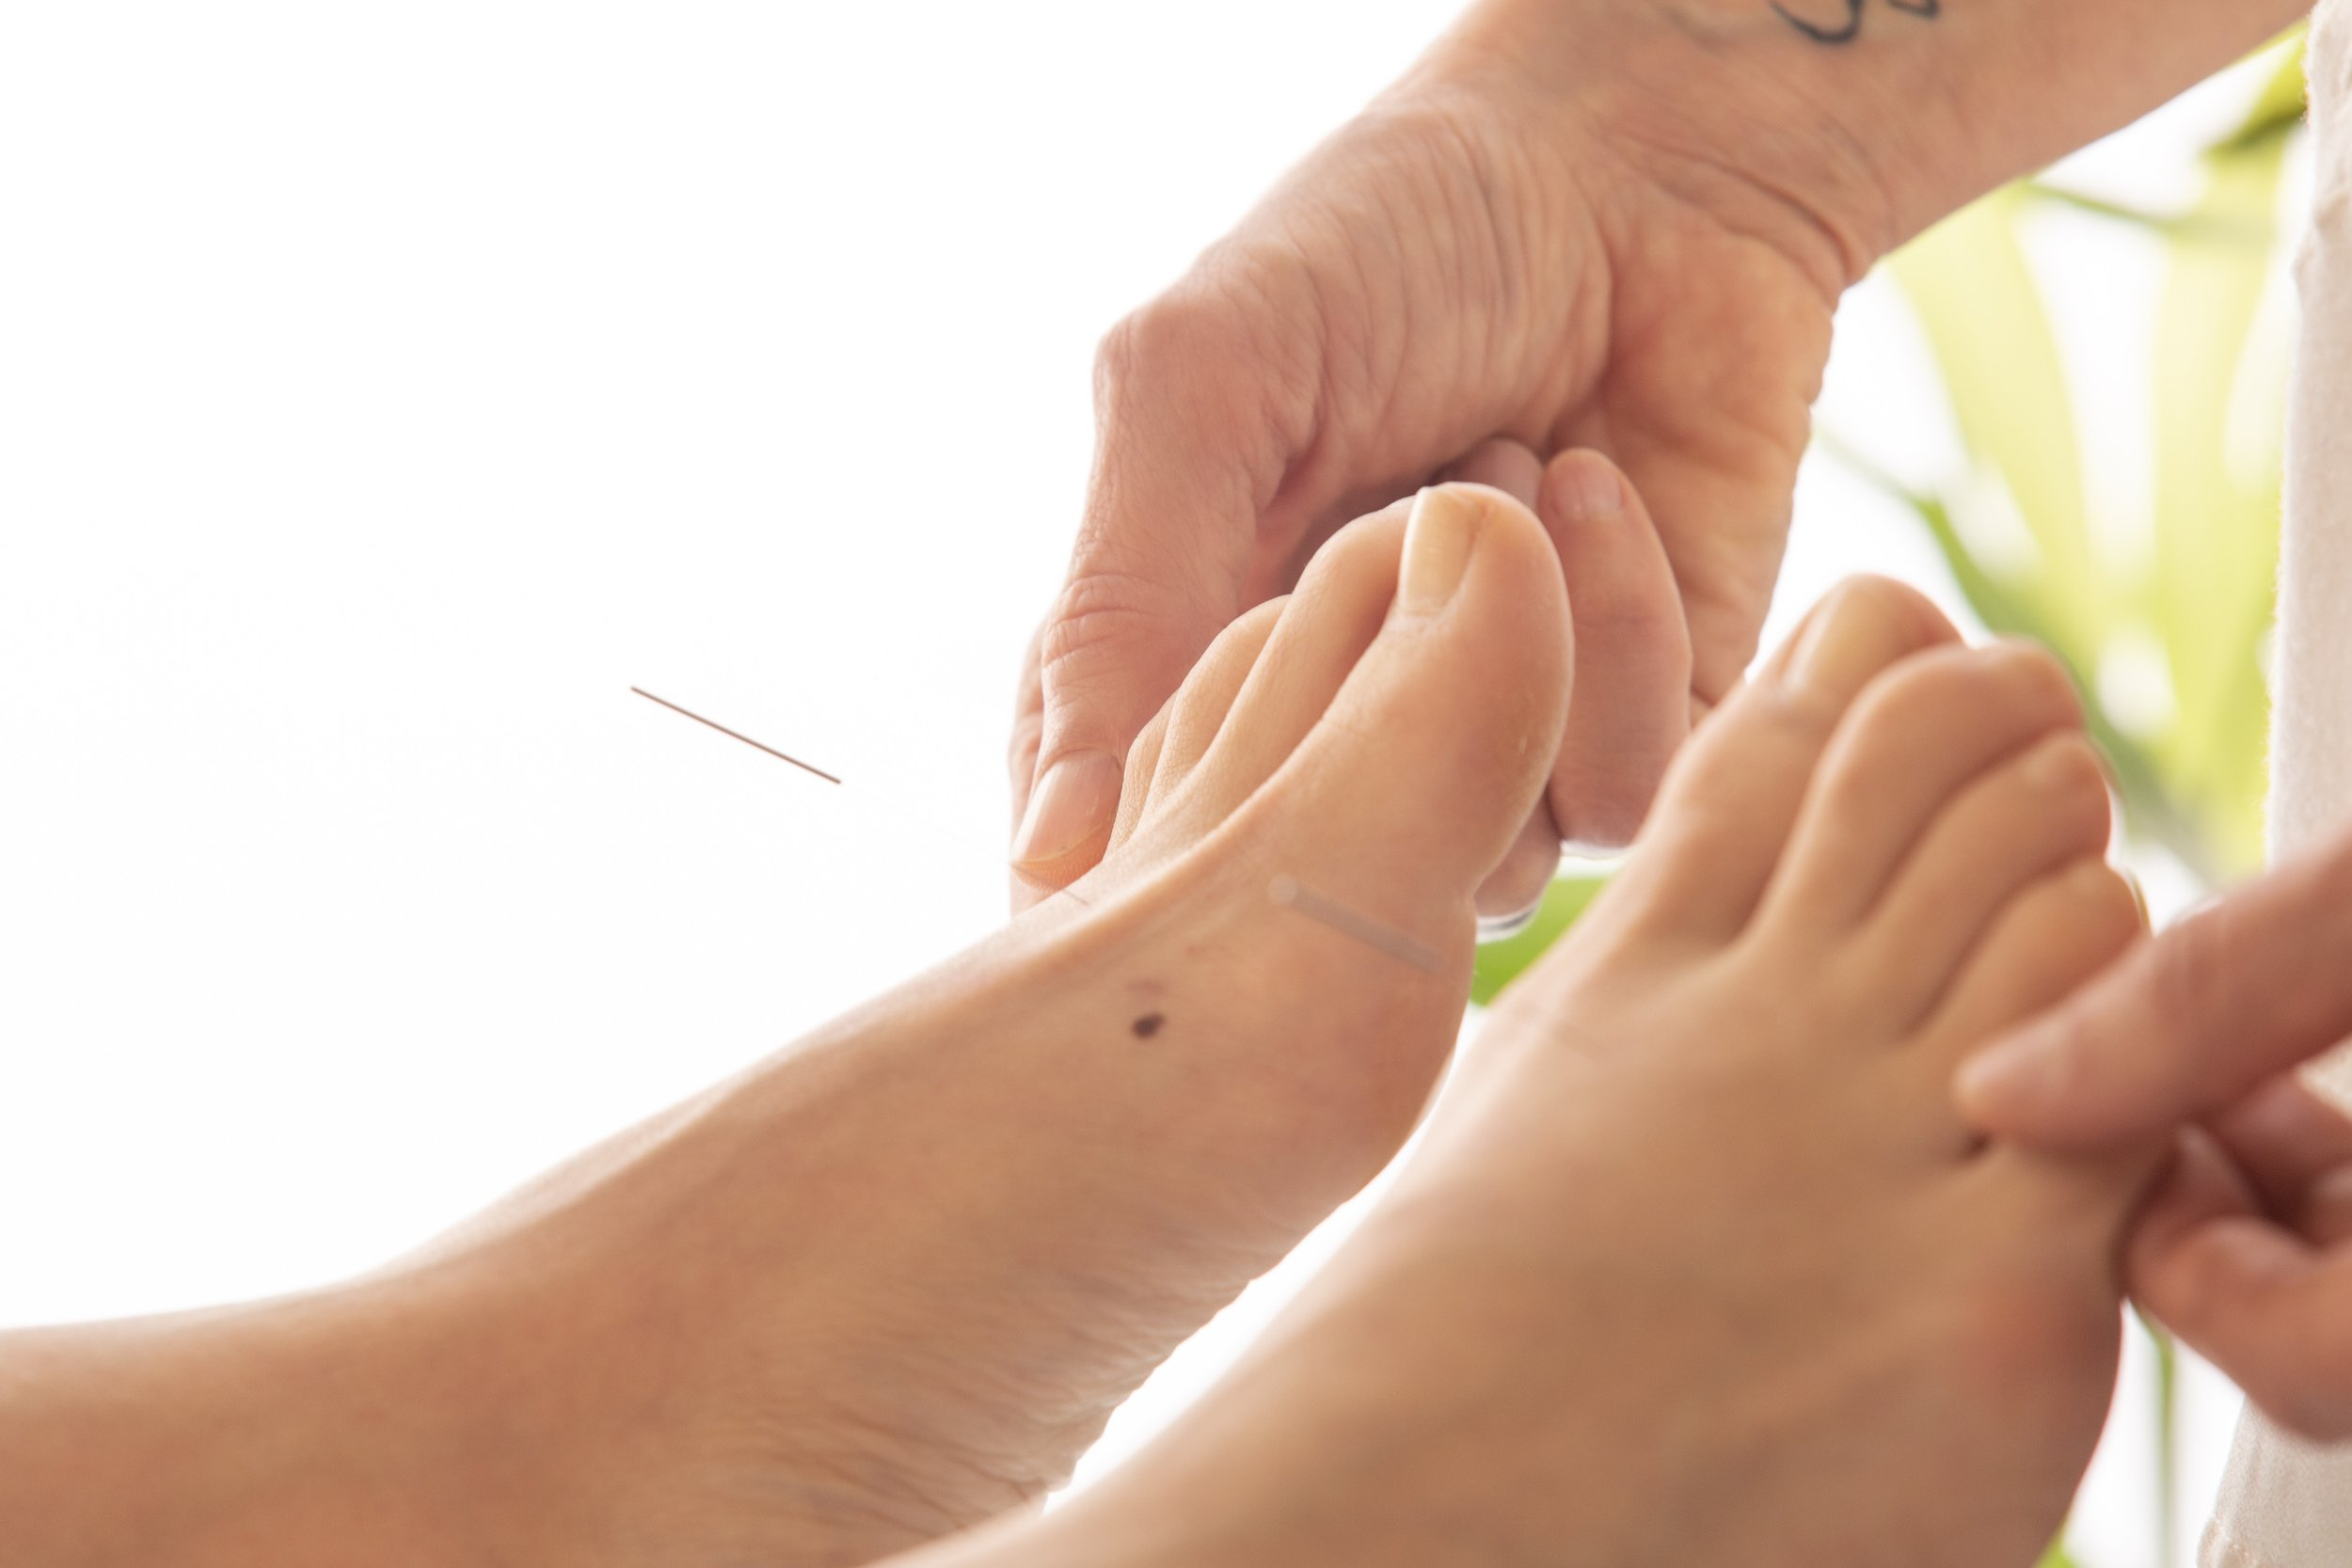 Does Acupuncture Work? - Yes. Acupuncture has been recognized by many medical insurance companies, The National Institute of Health and The World Health Organization to help with many medical conditions, fertility concerns including absolute infertility and for overall health.